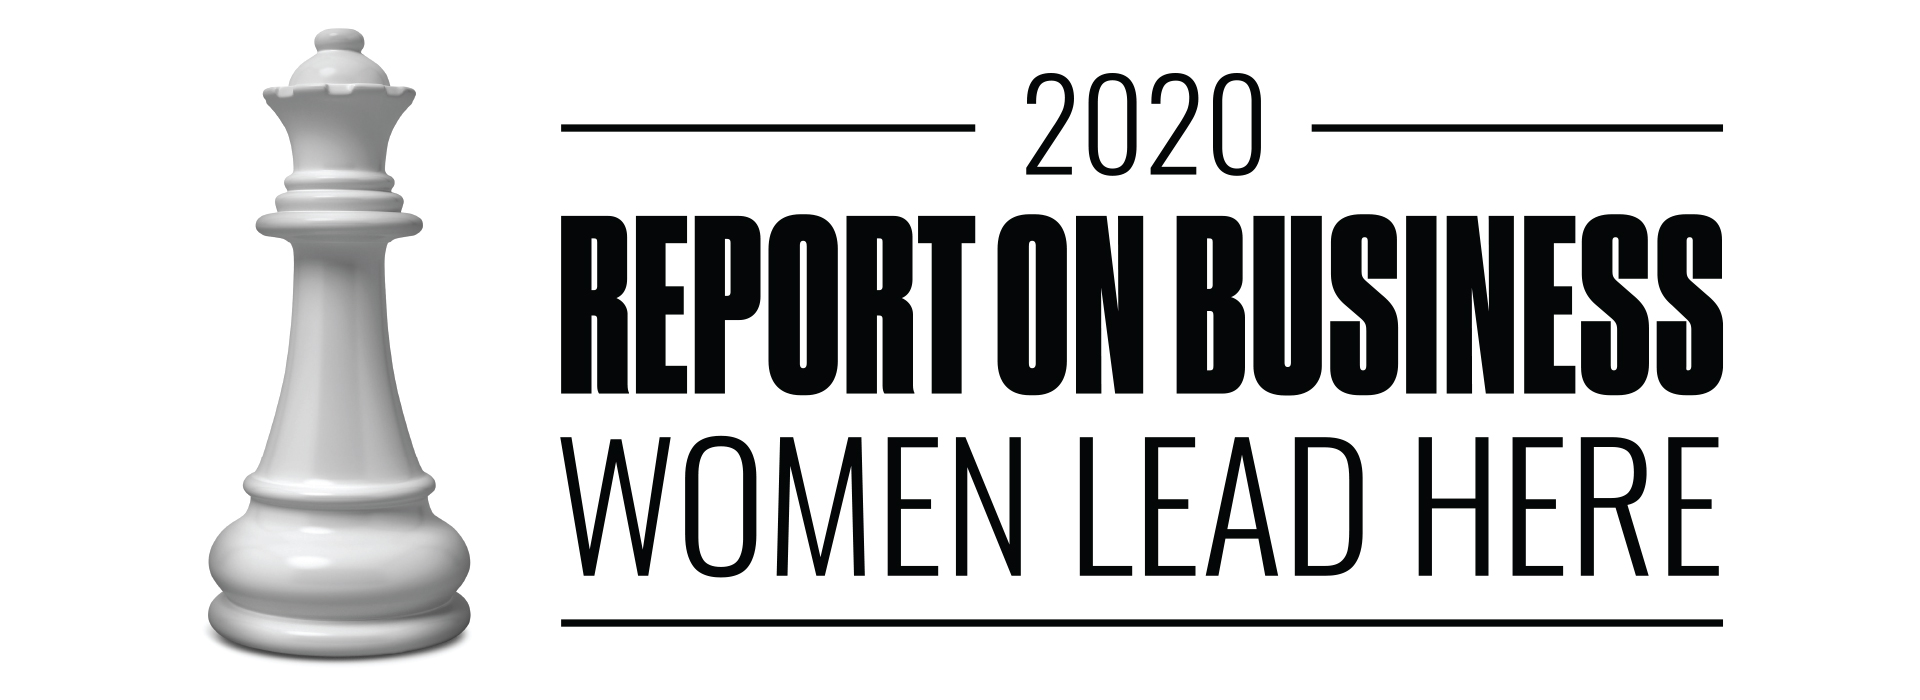 logo of 2020 Report on Business Women Lead Here